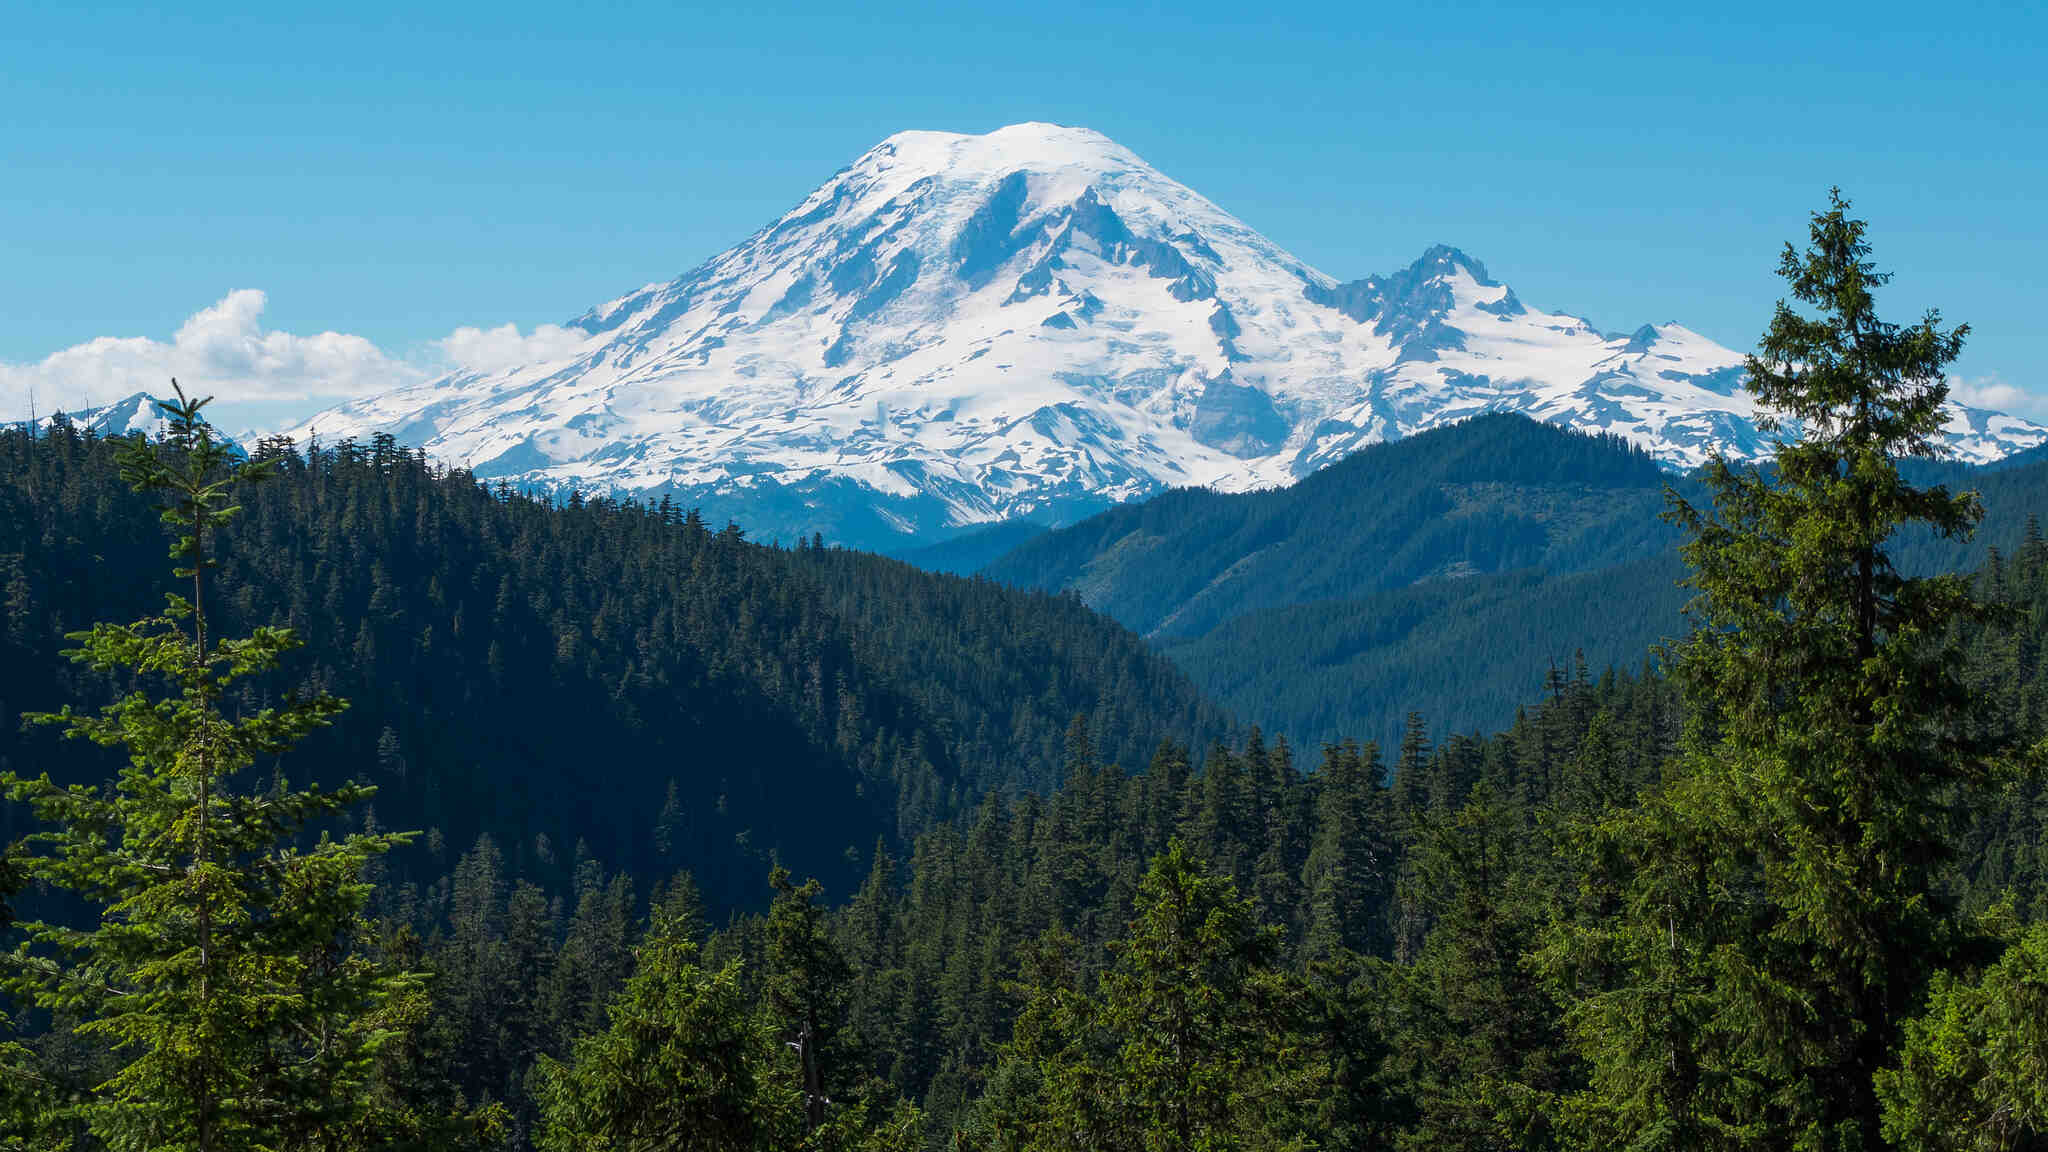 View of a forested landscape with Mount Rainier in the background.